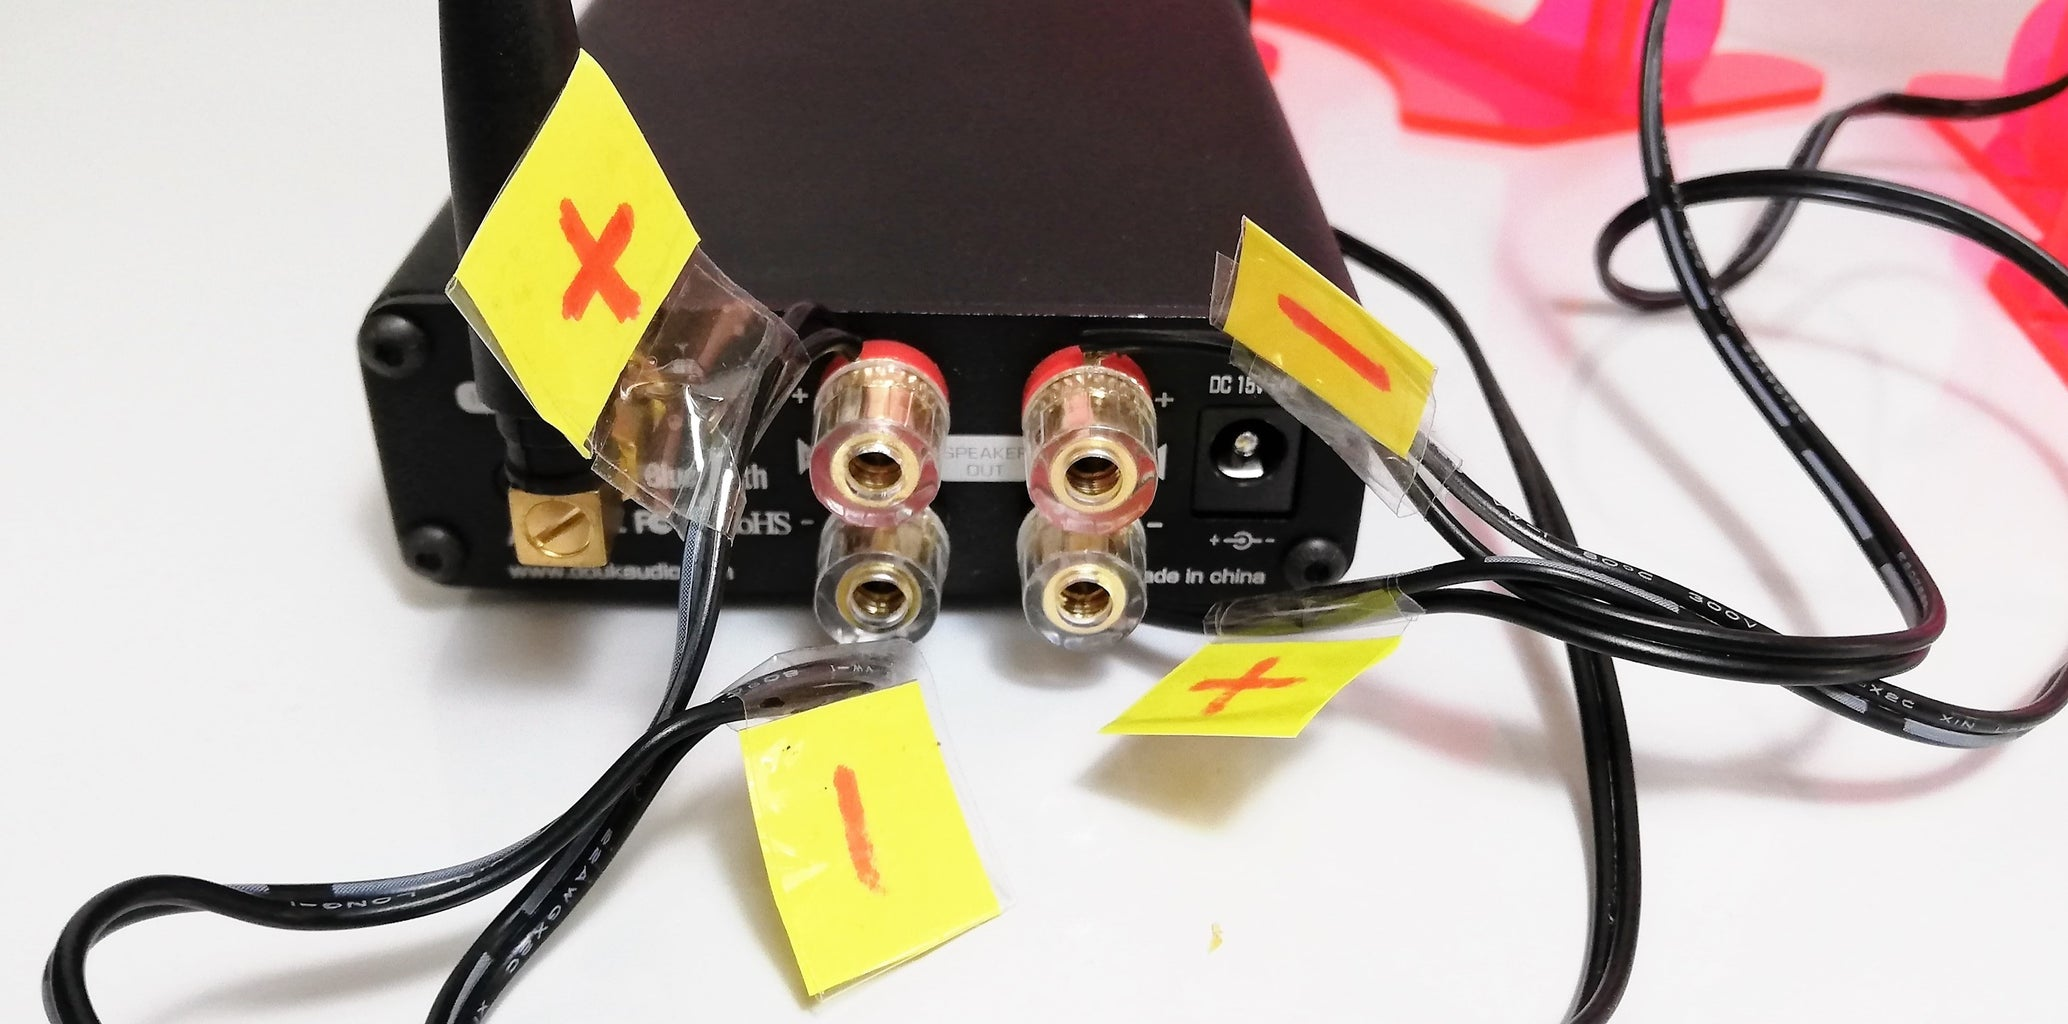 CONNECTING TO THE AMPLIFIER